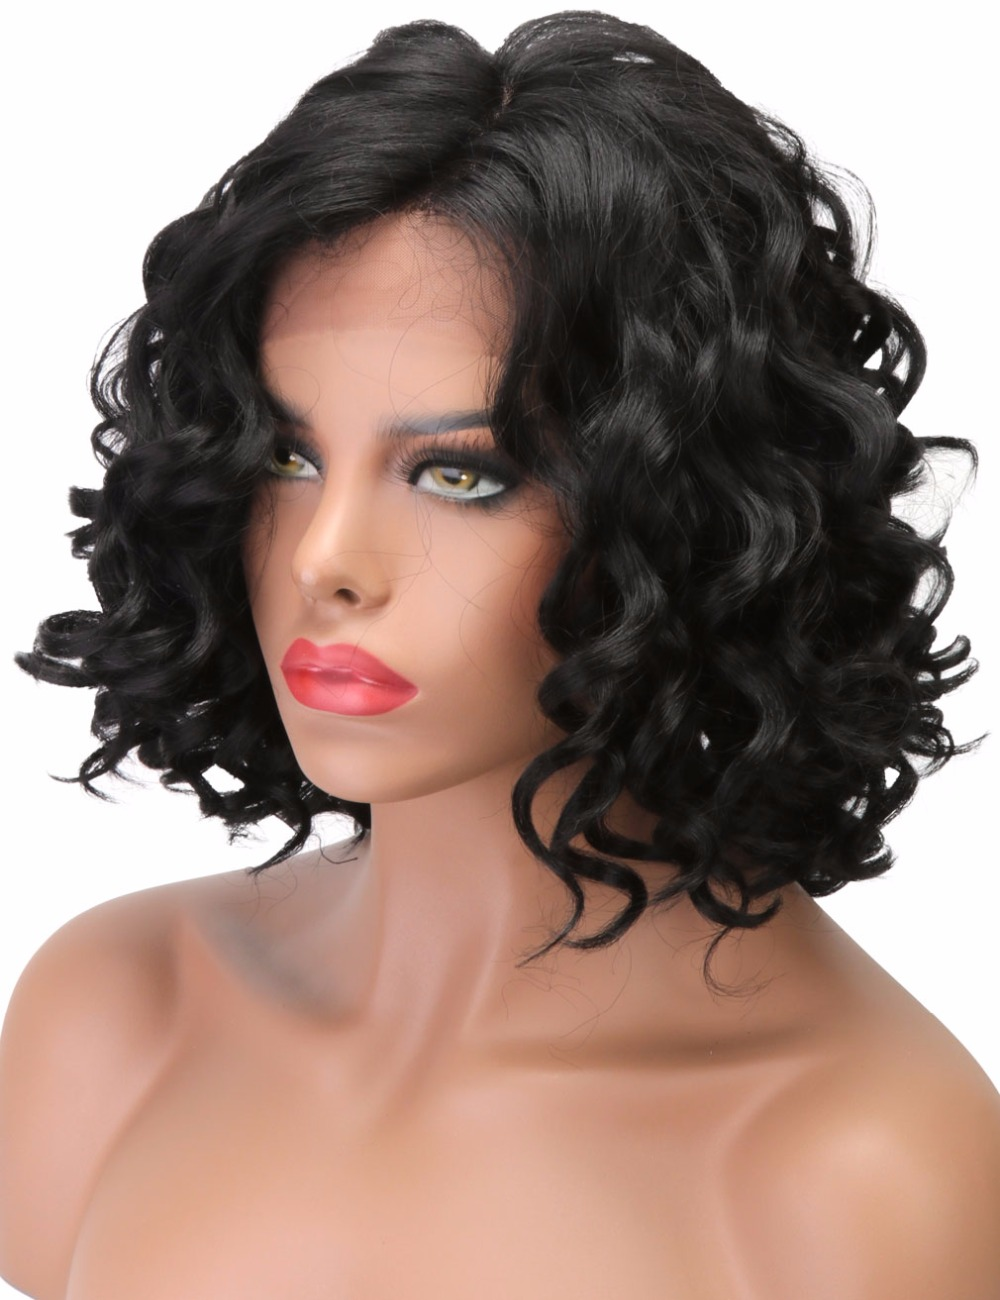 COLODO Natural Hair Lace Front Wigs for Black Women Glueless Synthetic Hair Body Wave Short Cut Wigs